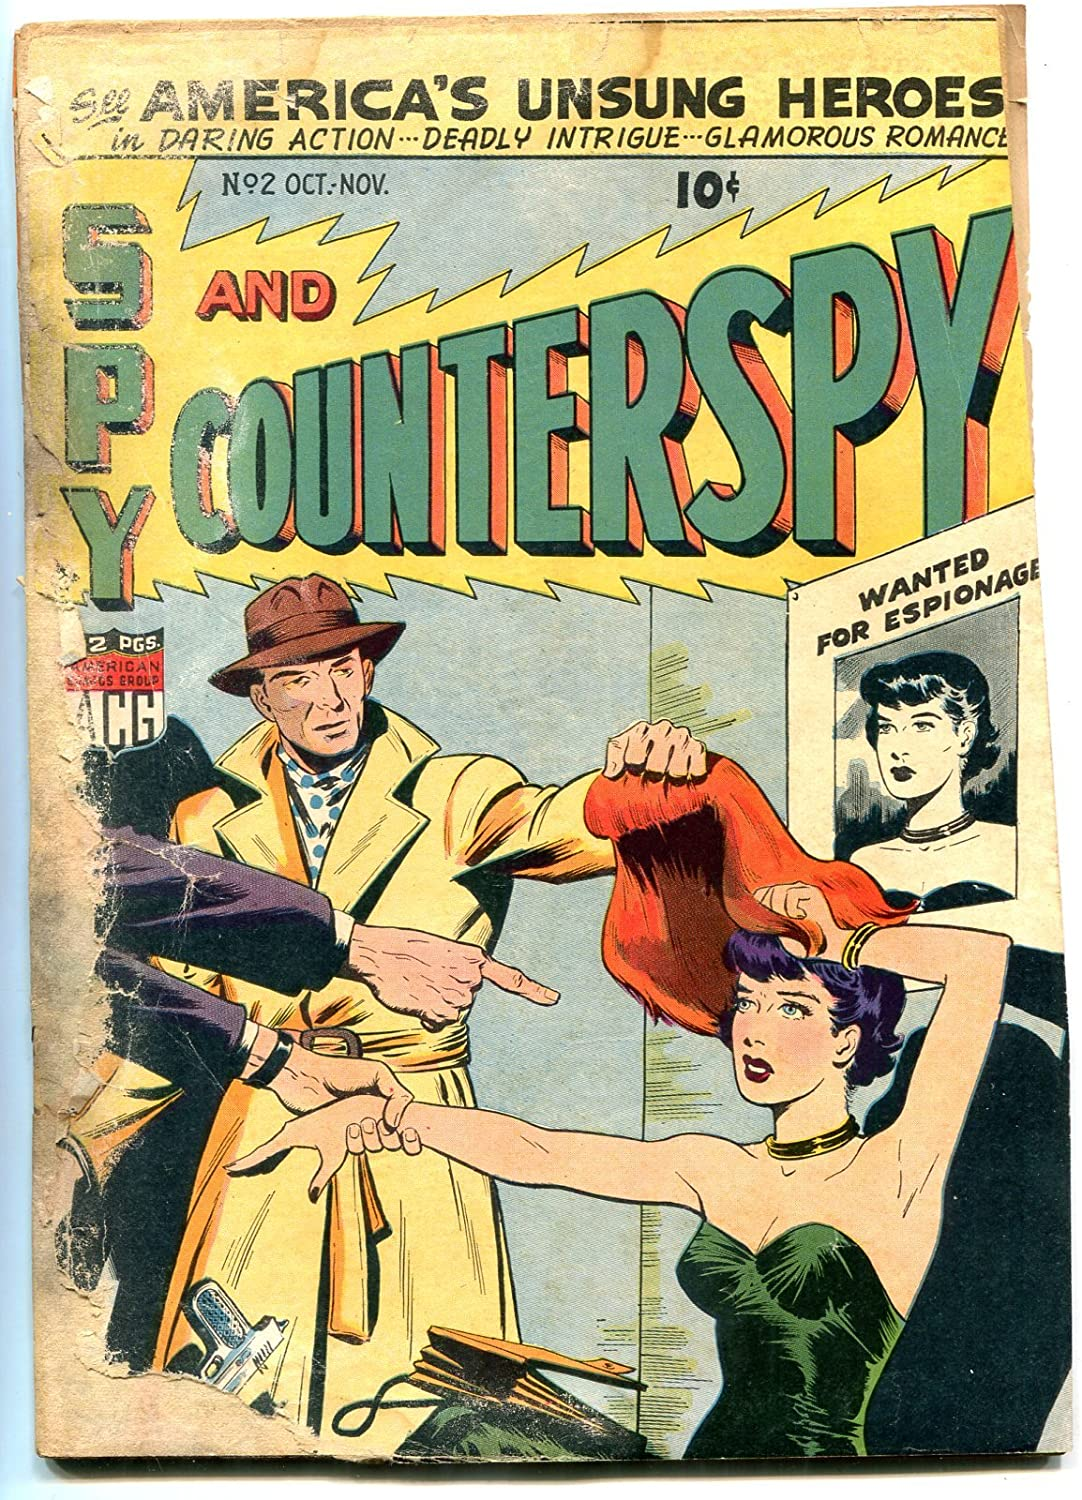 Spy and Counter #2 Max 81% OFF 1949 Black Confederat Avengers Max 69% OFF Boyd Belle